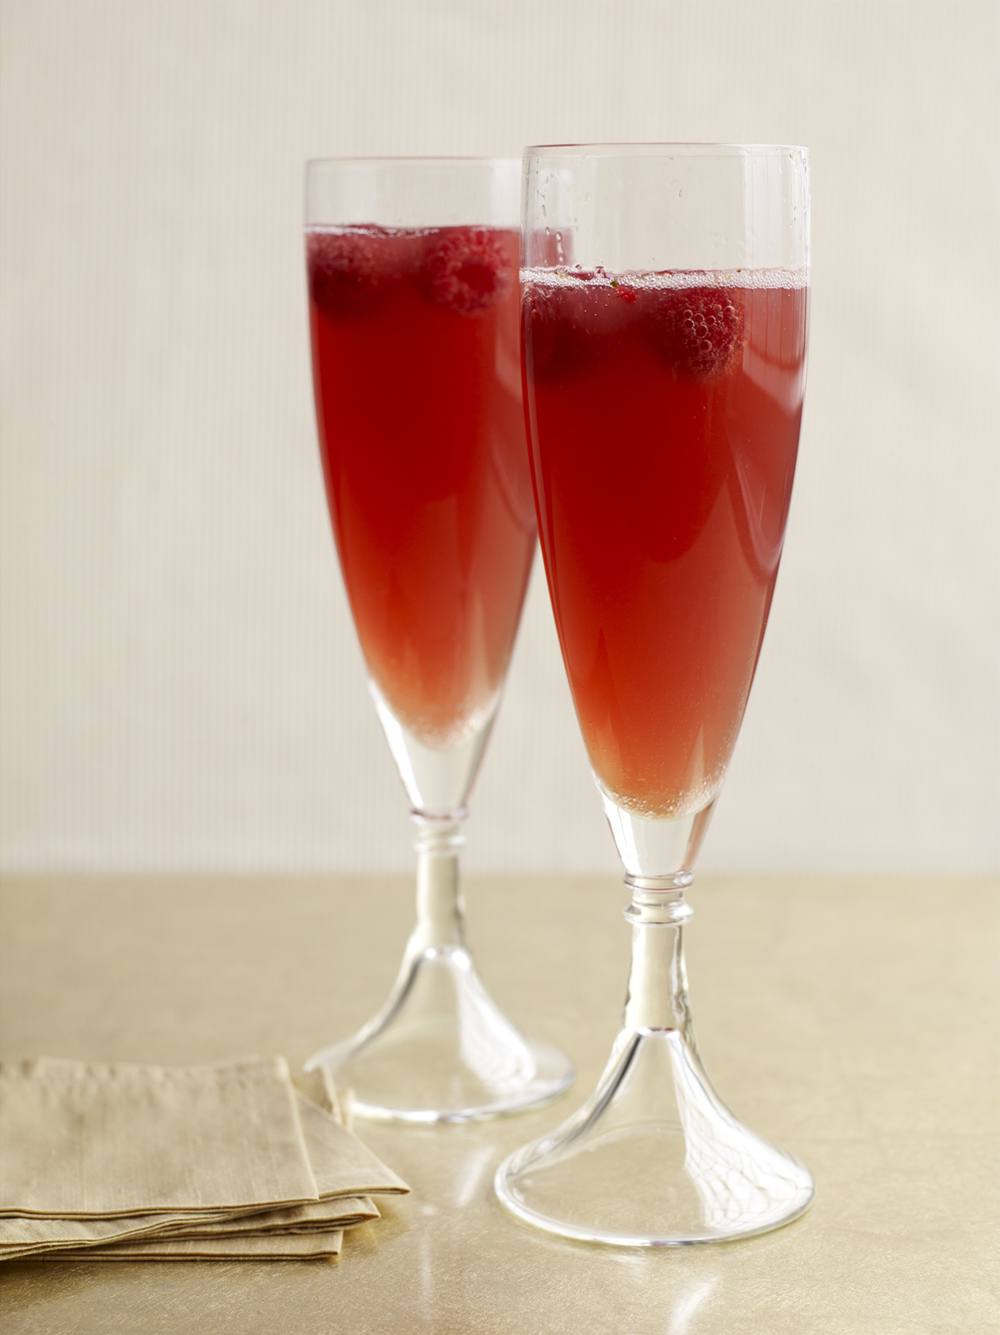 06_ChampagneCocktail_163.jpg